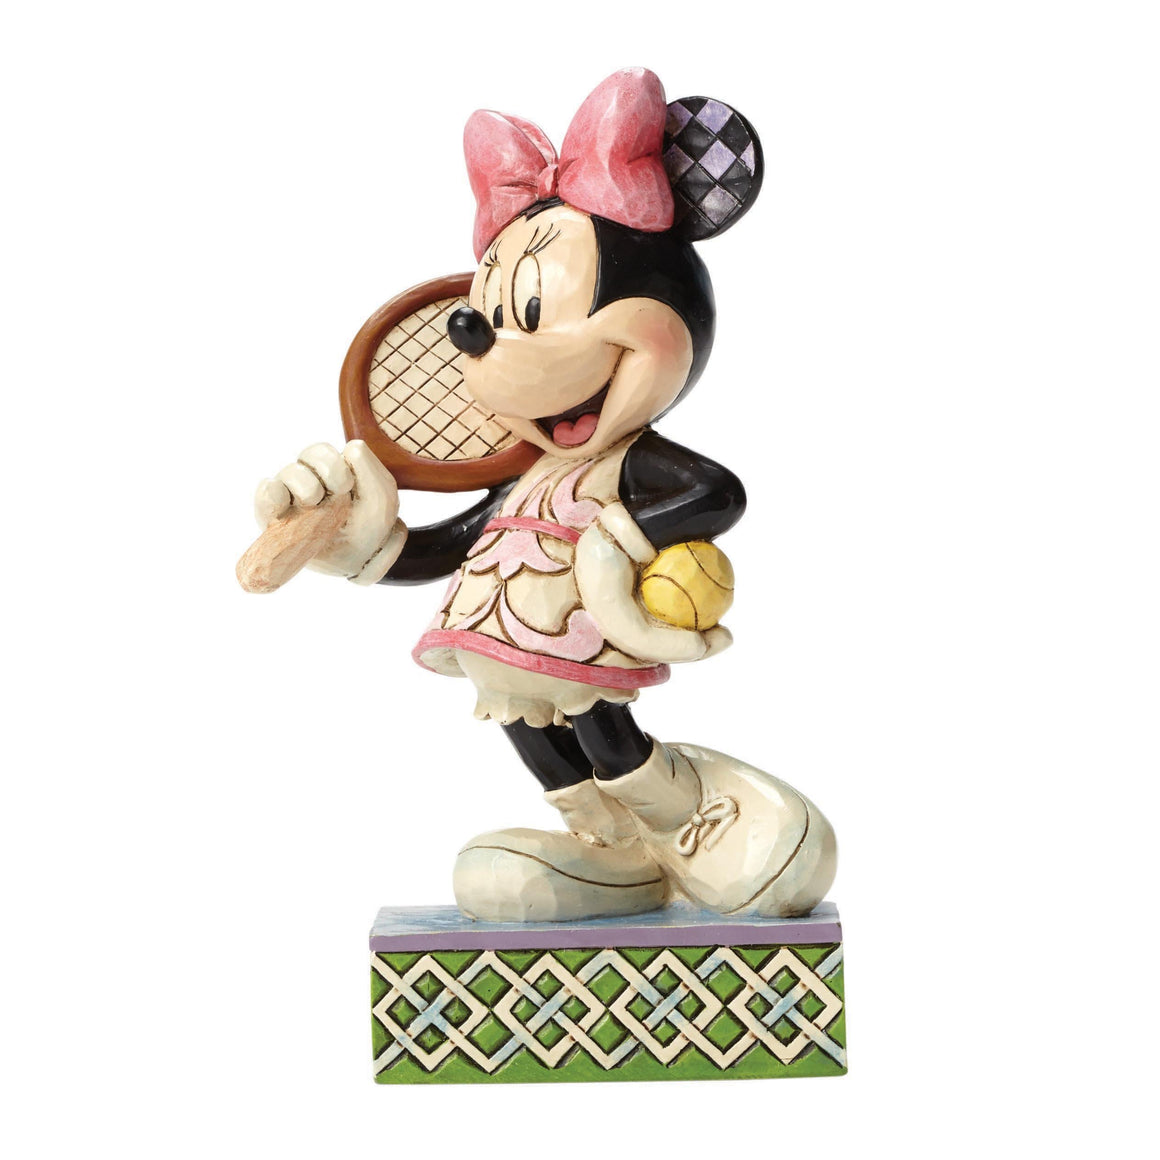 Tennis, Anyone? - Minnie Mouse Figurine - Disney Traditions by Jim Shore